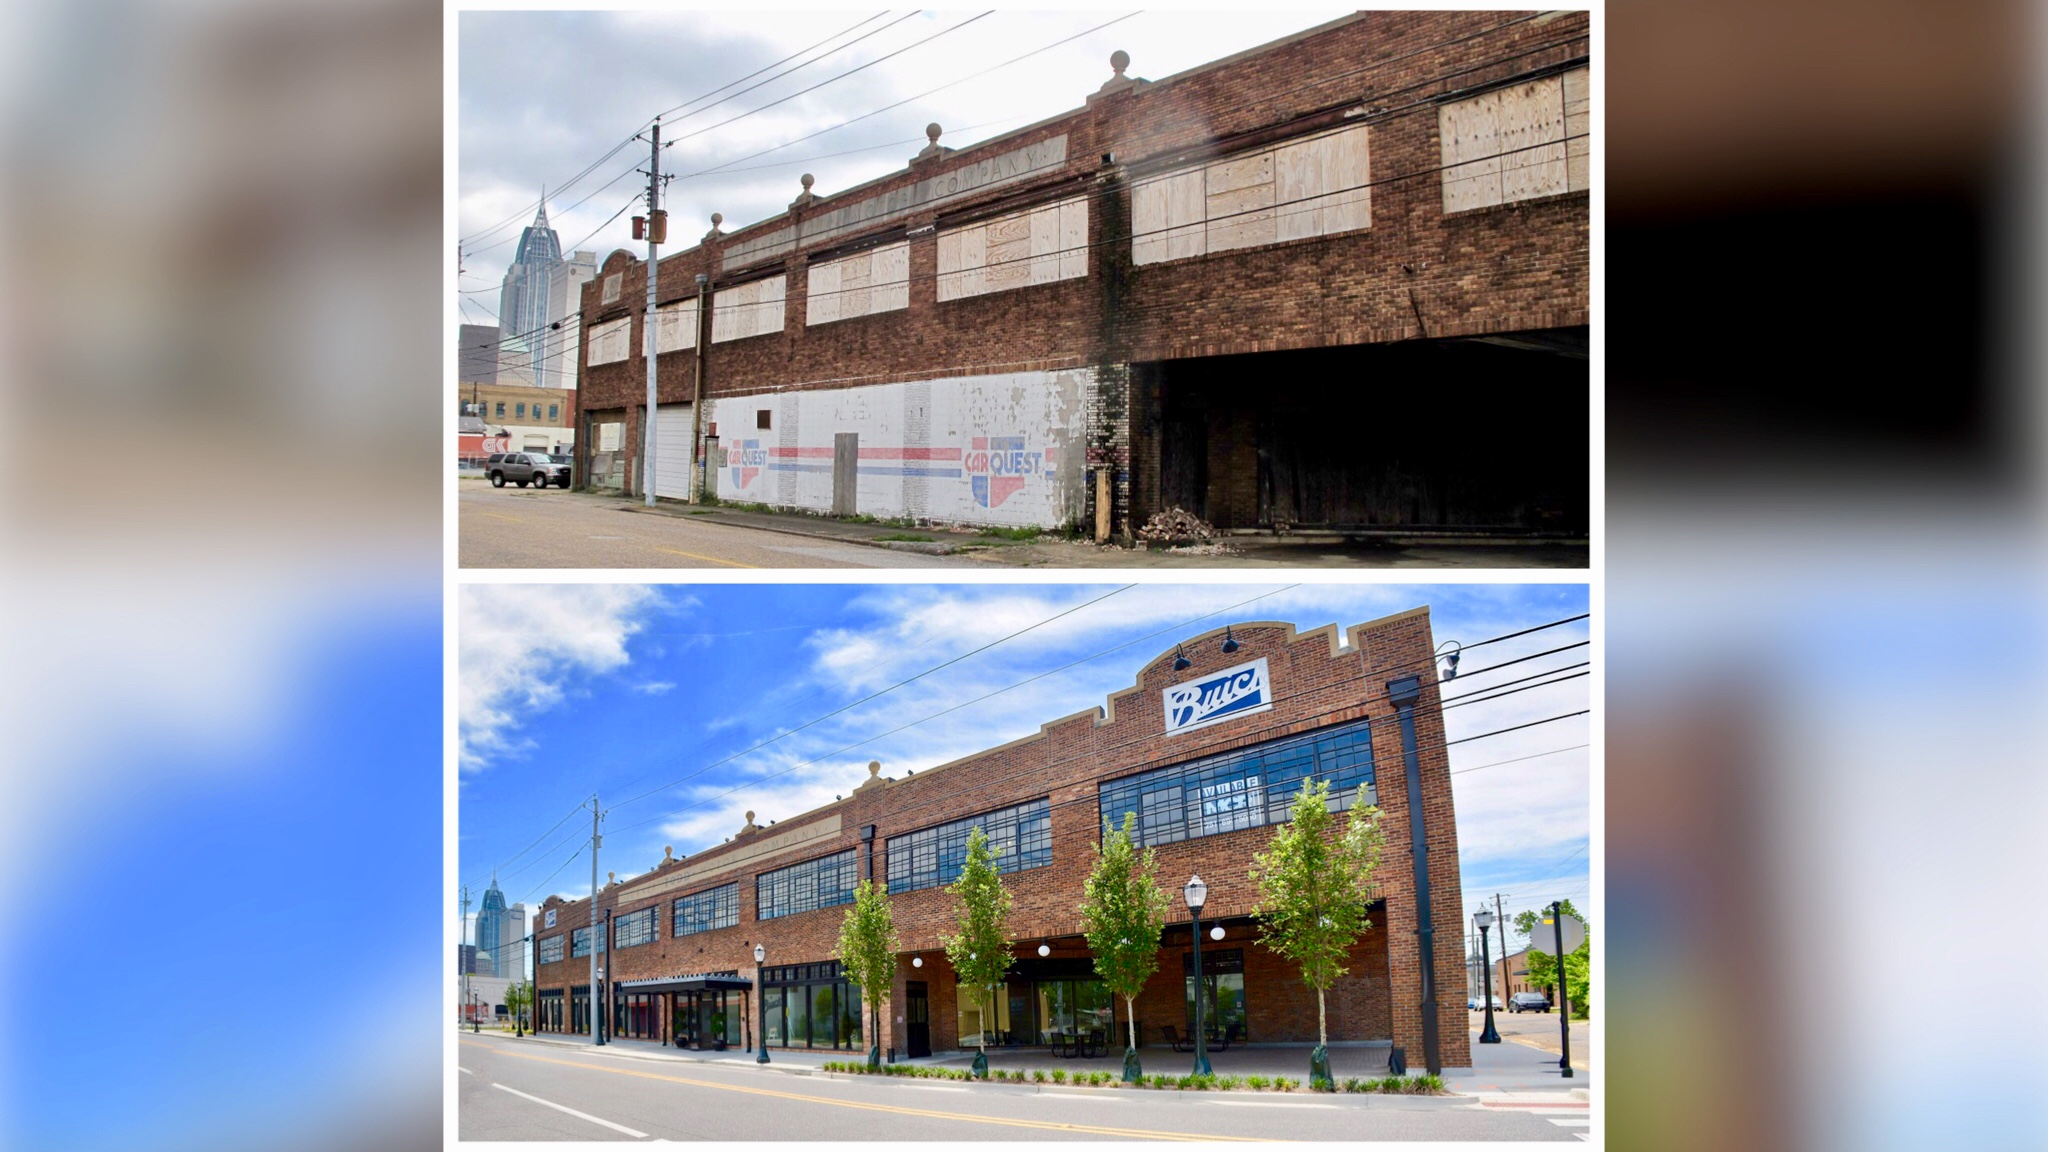 <p>Buick Building on St. Louis Street before and after restoration (photo: alabamanewscenter/Jack Helean)</p>